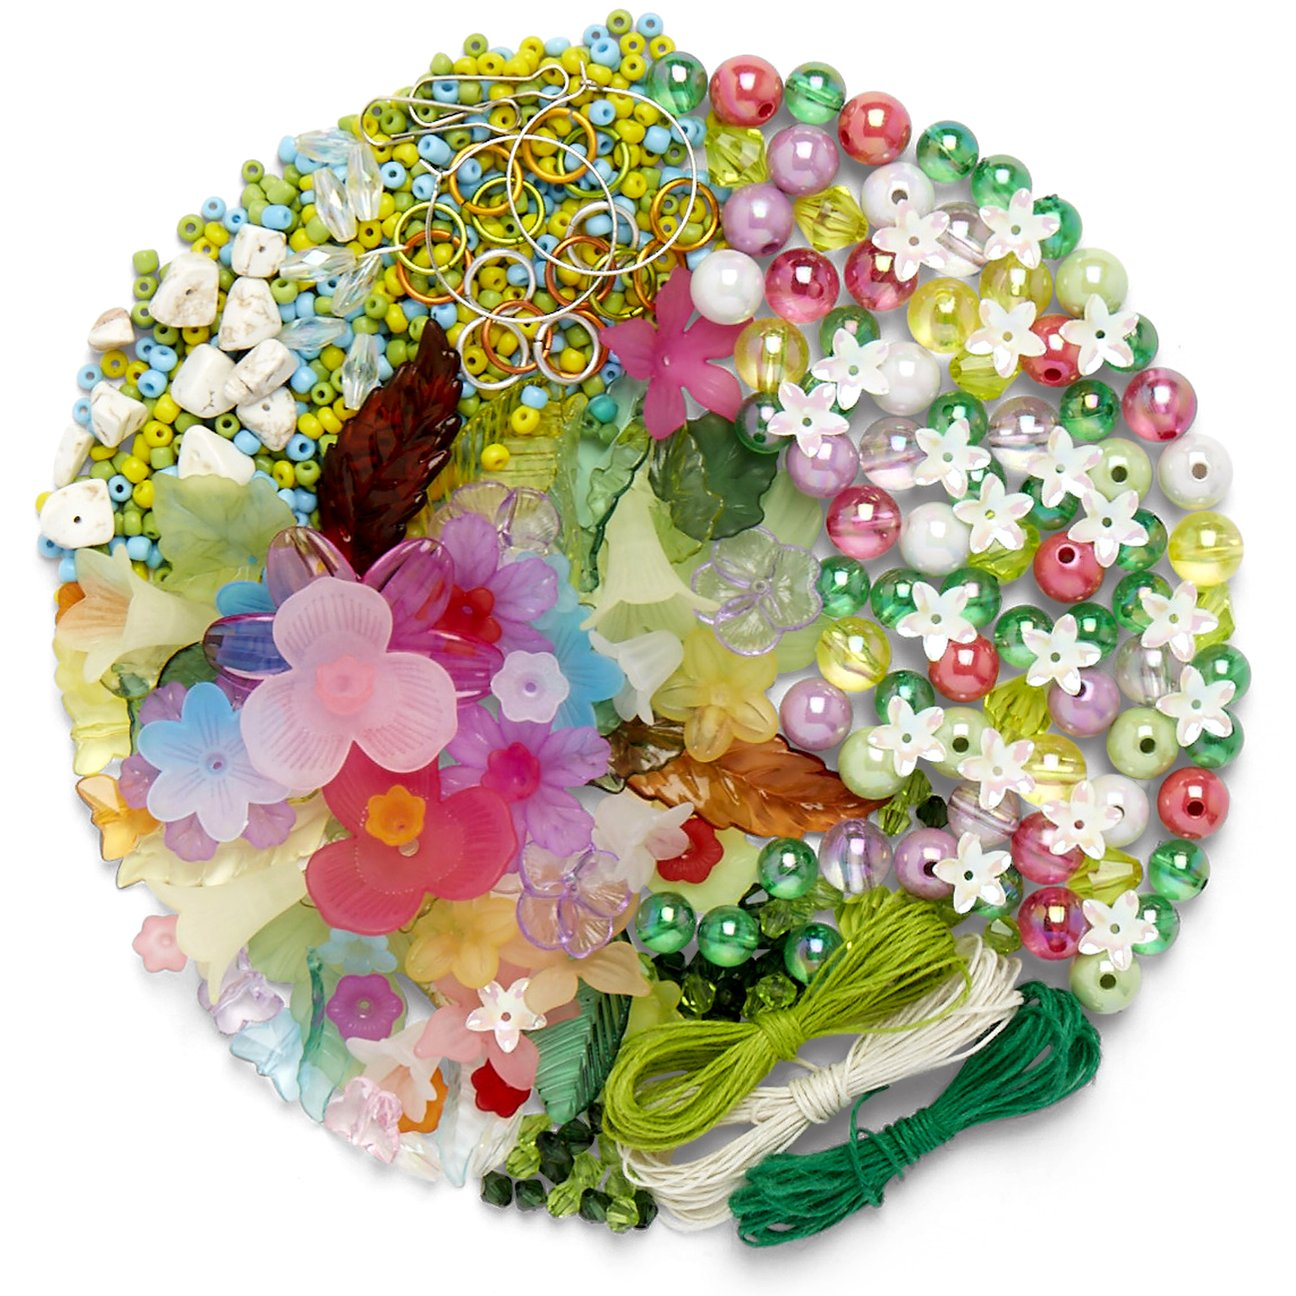 PETAL PARTY JEWELRY KIT